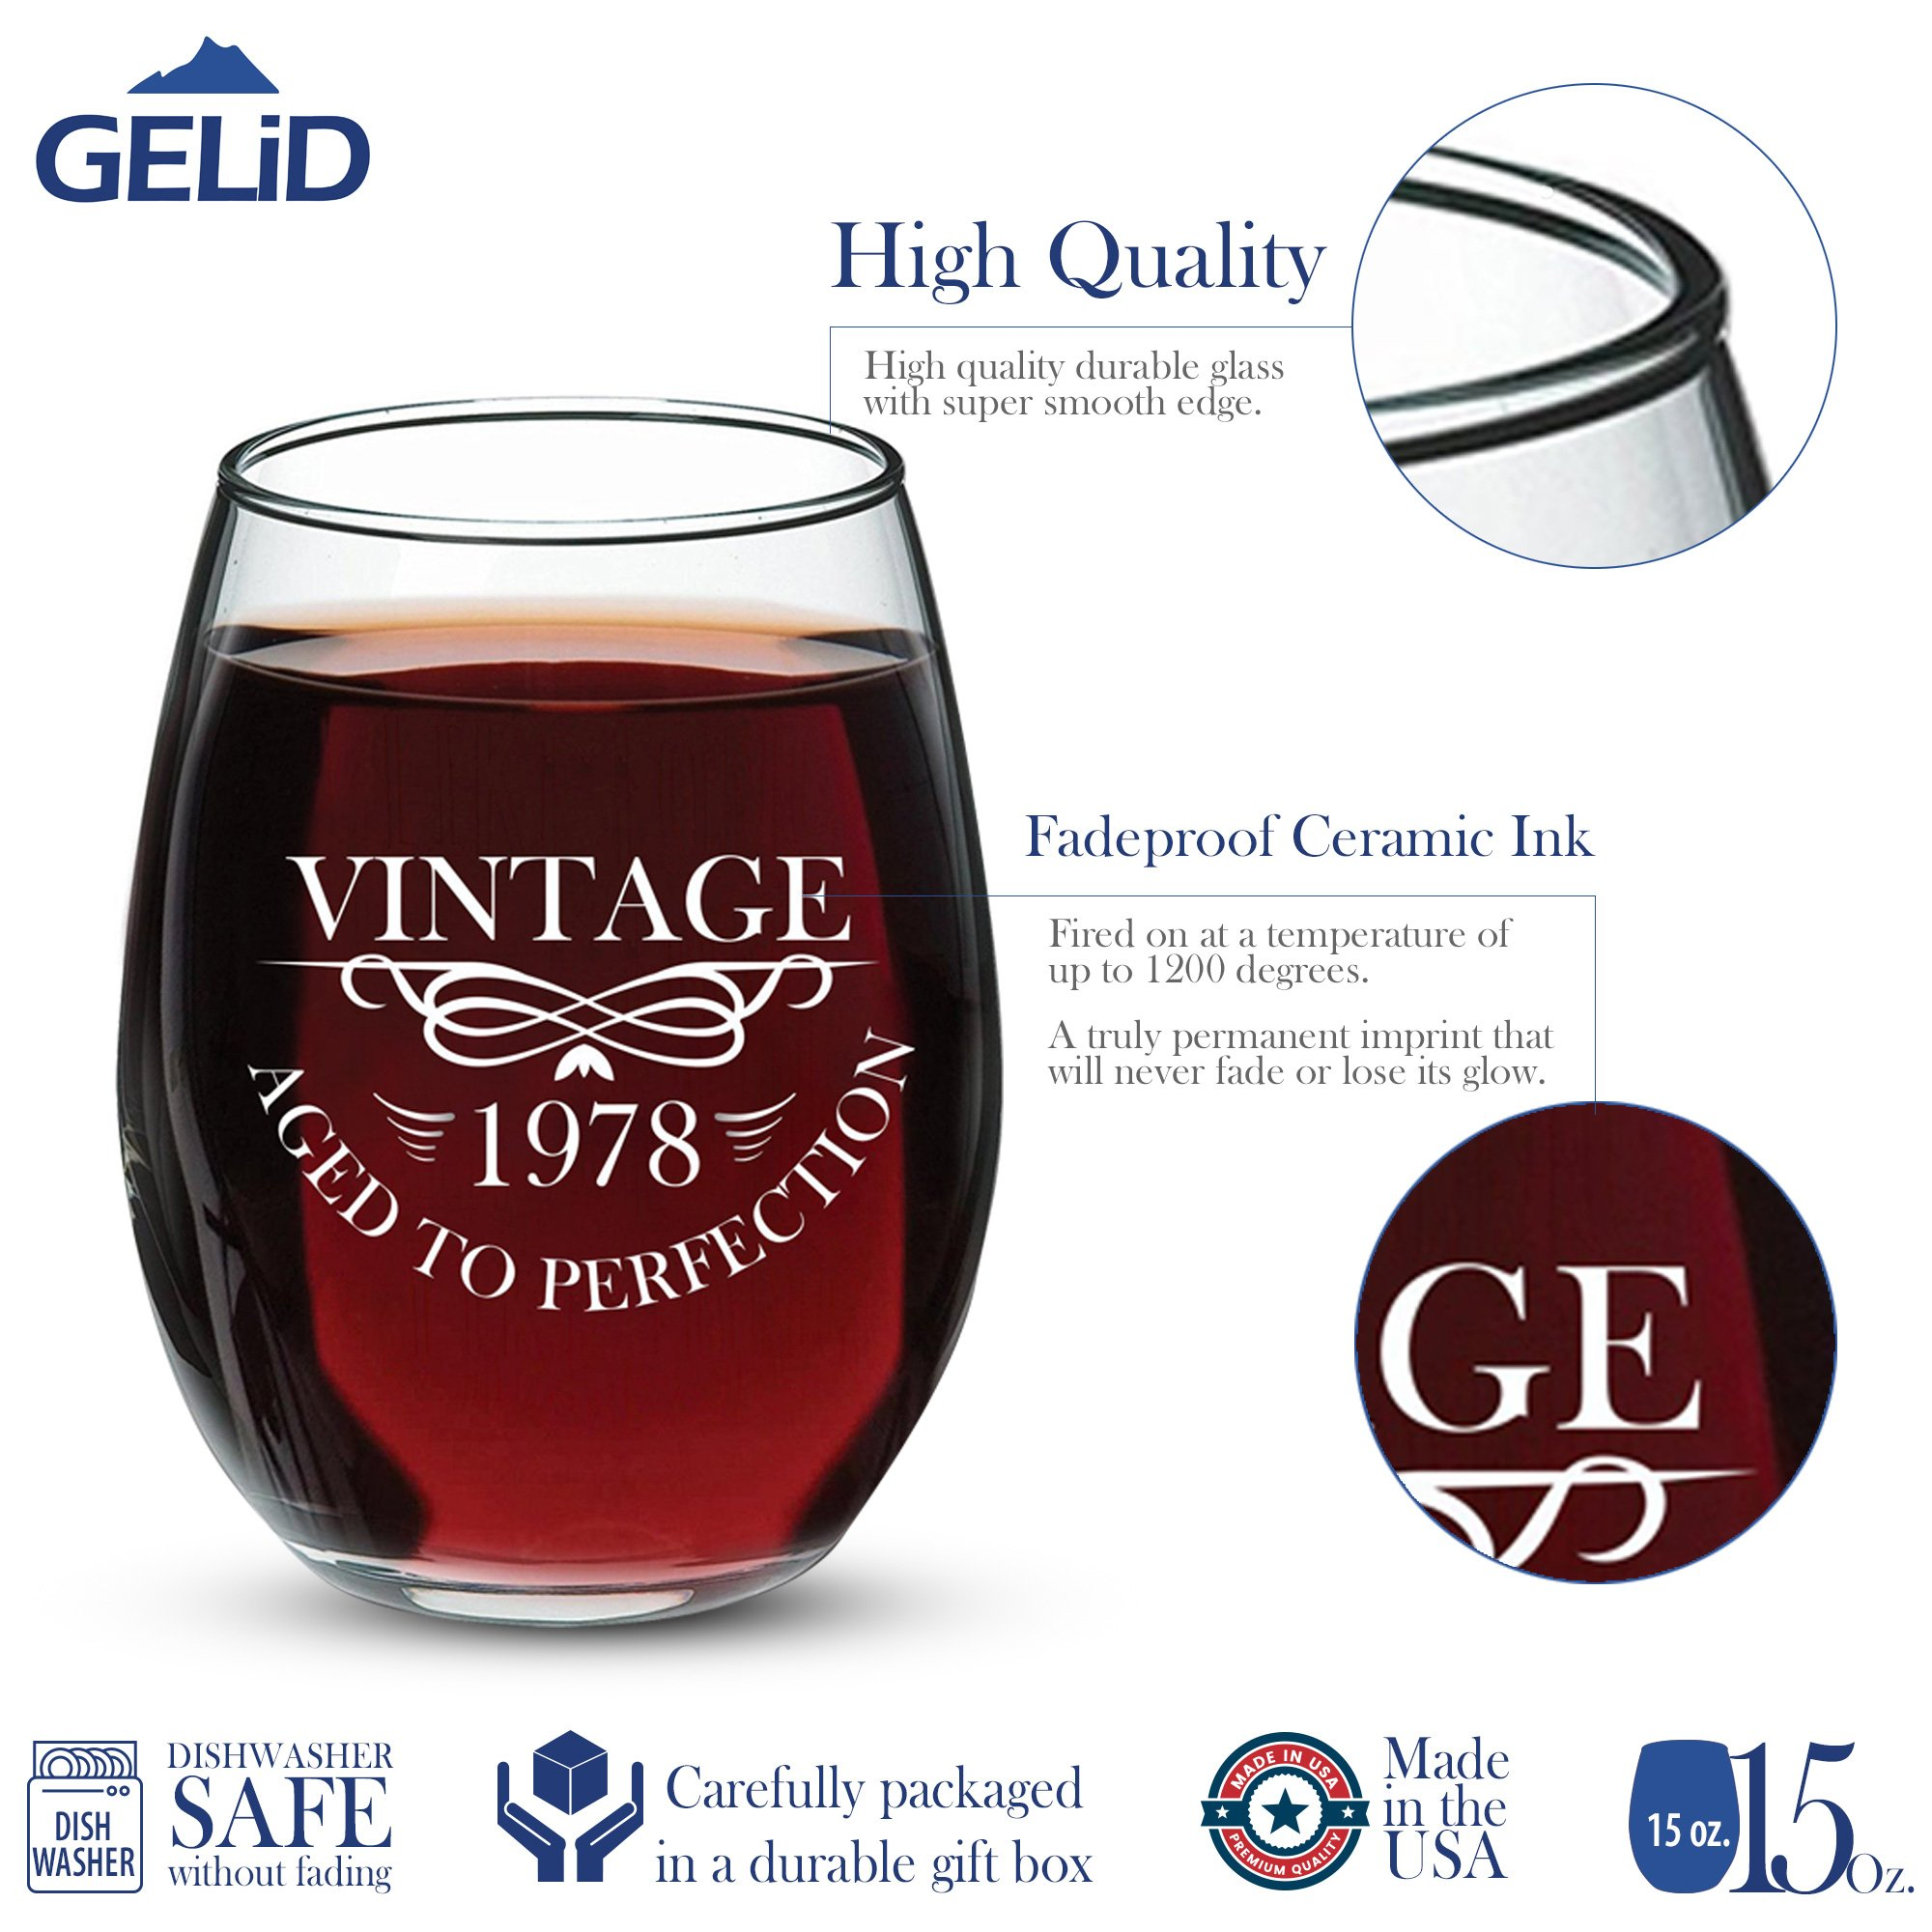 1978 40th Birthday Gifts for Women and Men Wine Glass - Funny Vintage Anniversary Gift Ideas for Mom, Dad, Husband or Wife - 15 oz Glasses for Red or White Wine - Party Decorations for Him or Her by Gelid (Image #2)